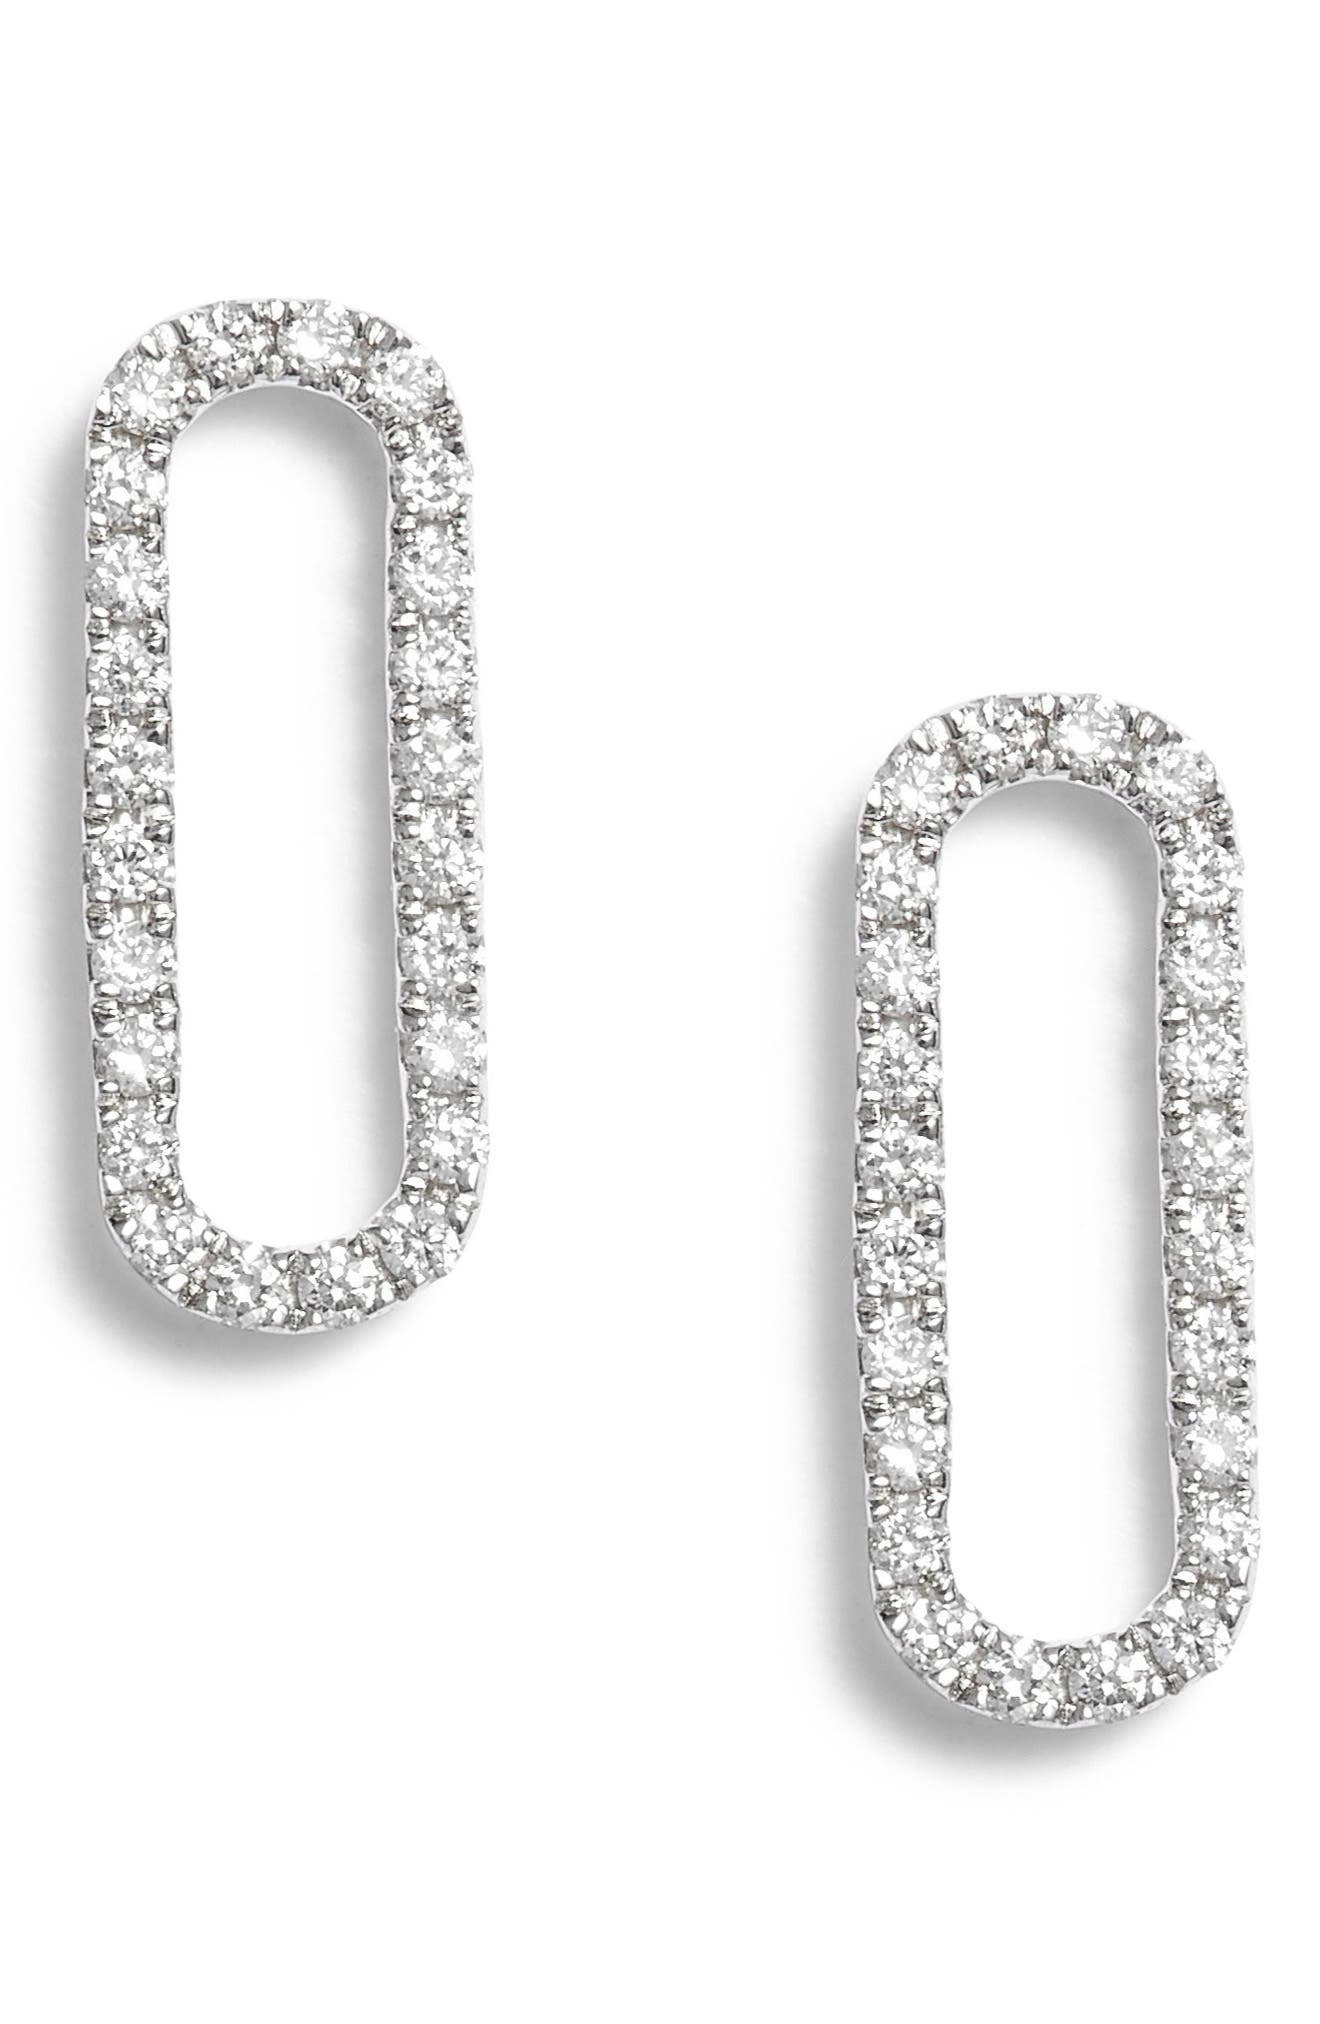 BONY LEVY Rounded Rectangle Diamond Stud Earrings, Main, color, 711